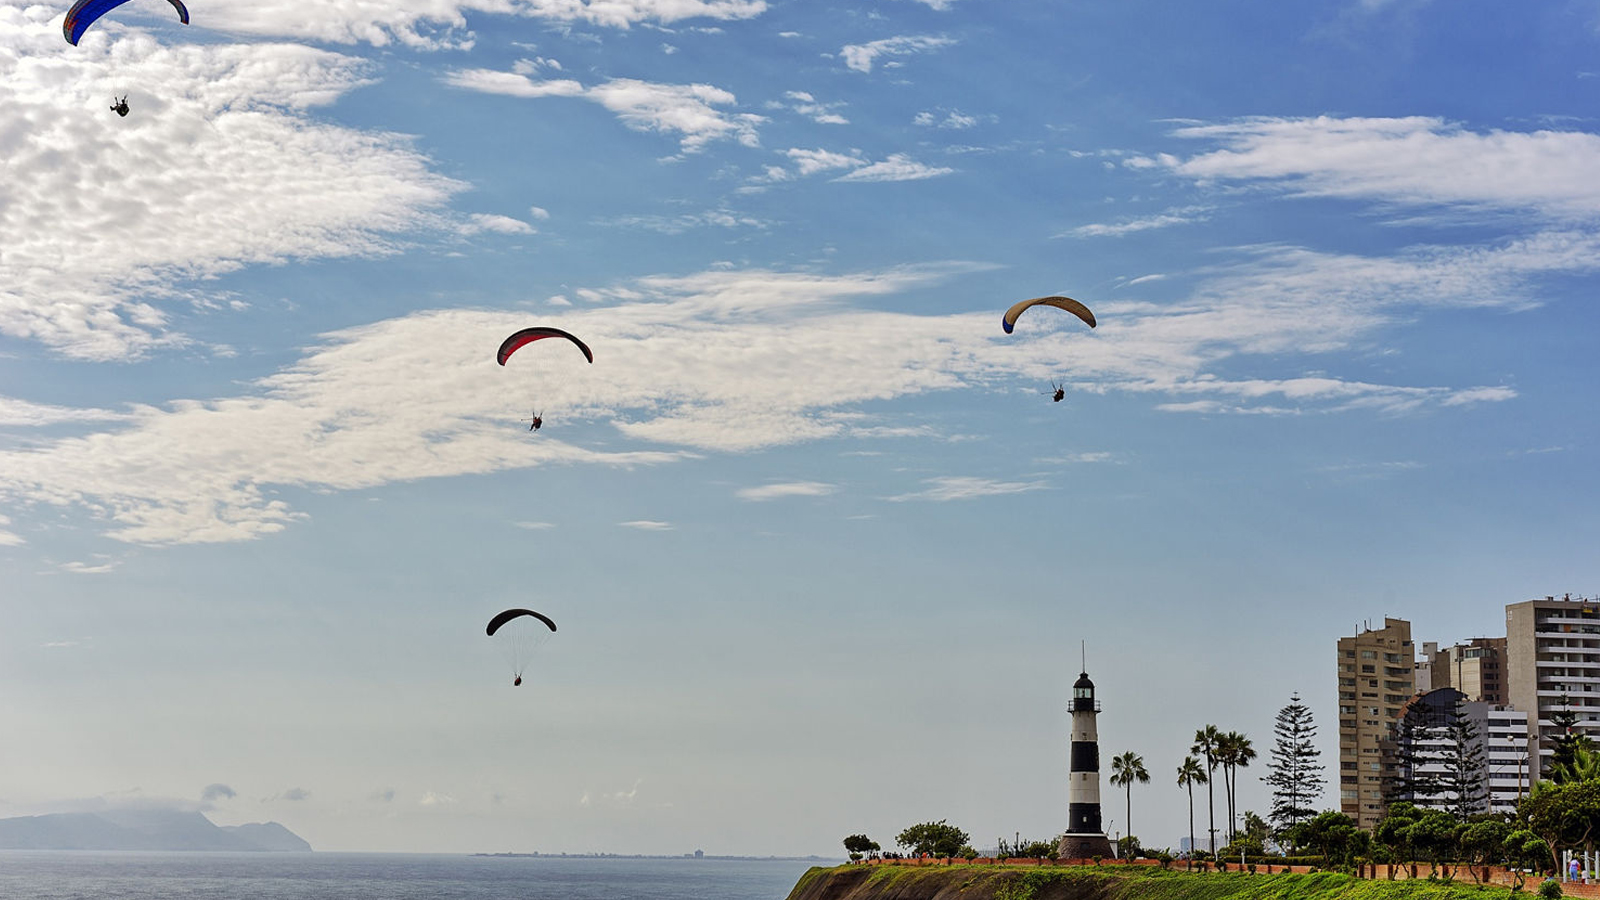 Paragliding along the Costa Verde in Miraflores - Inca World Peru